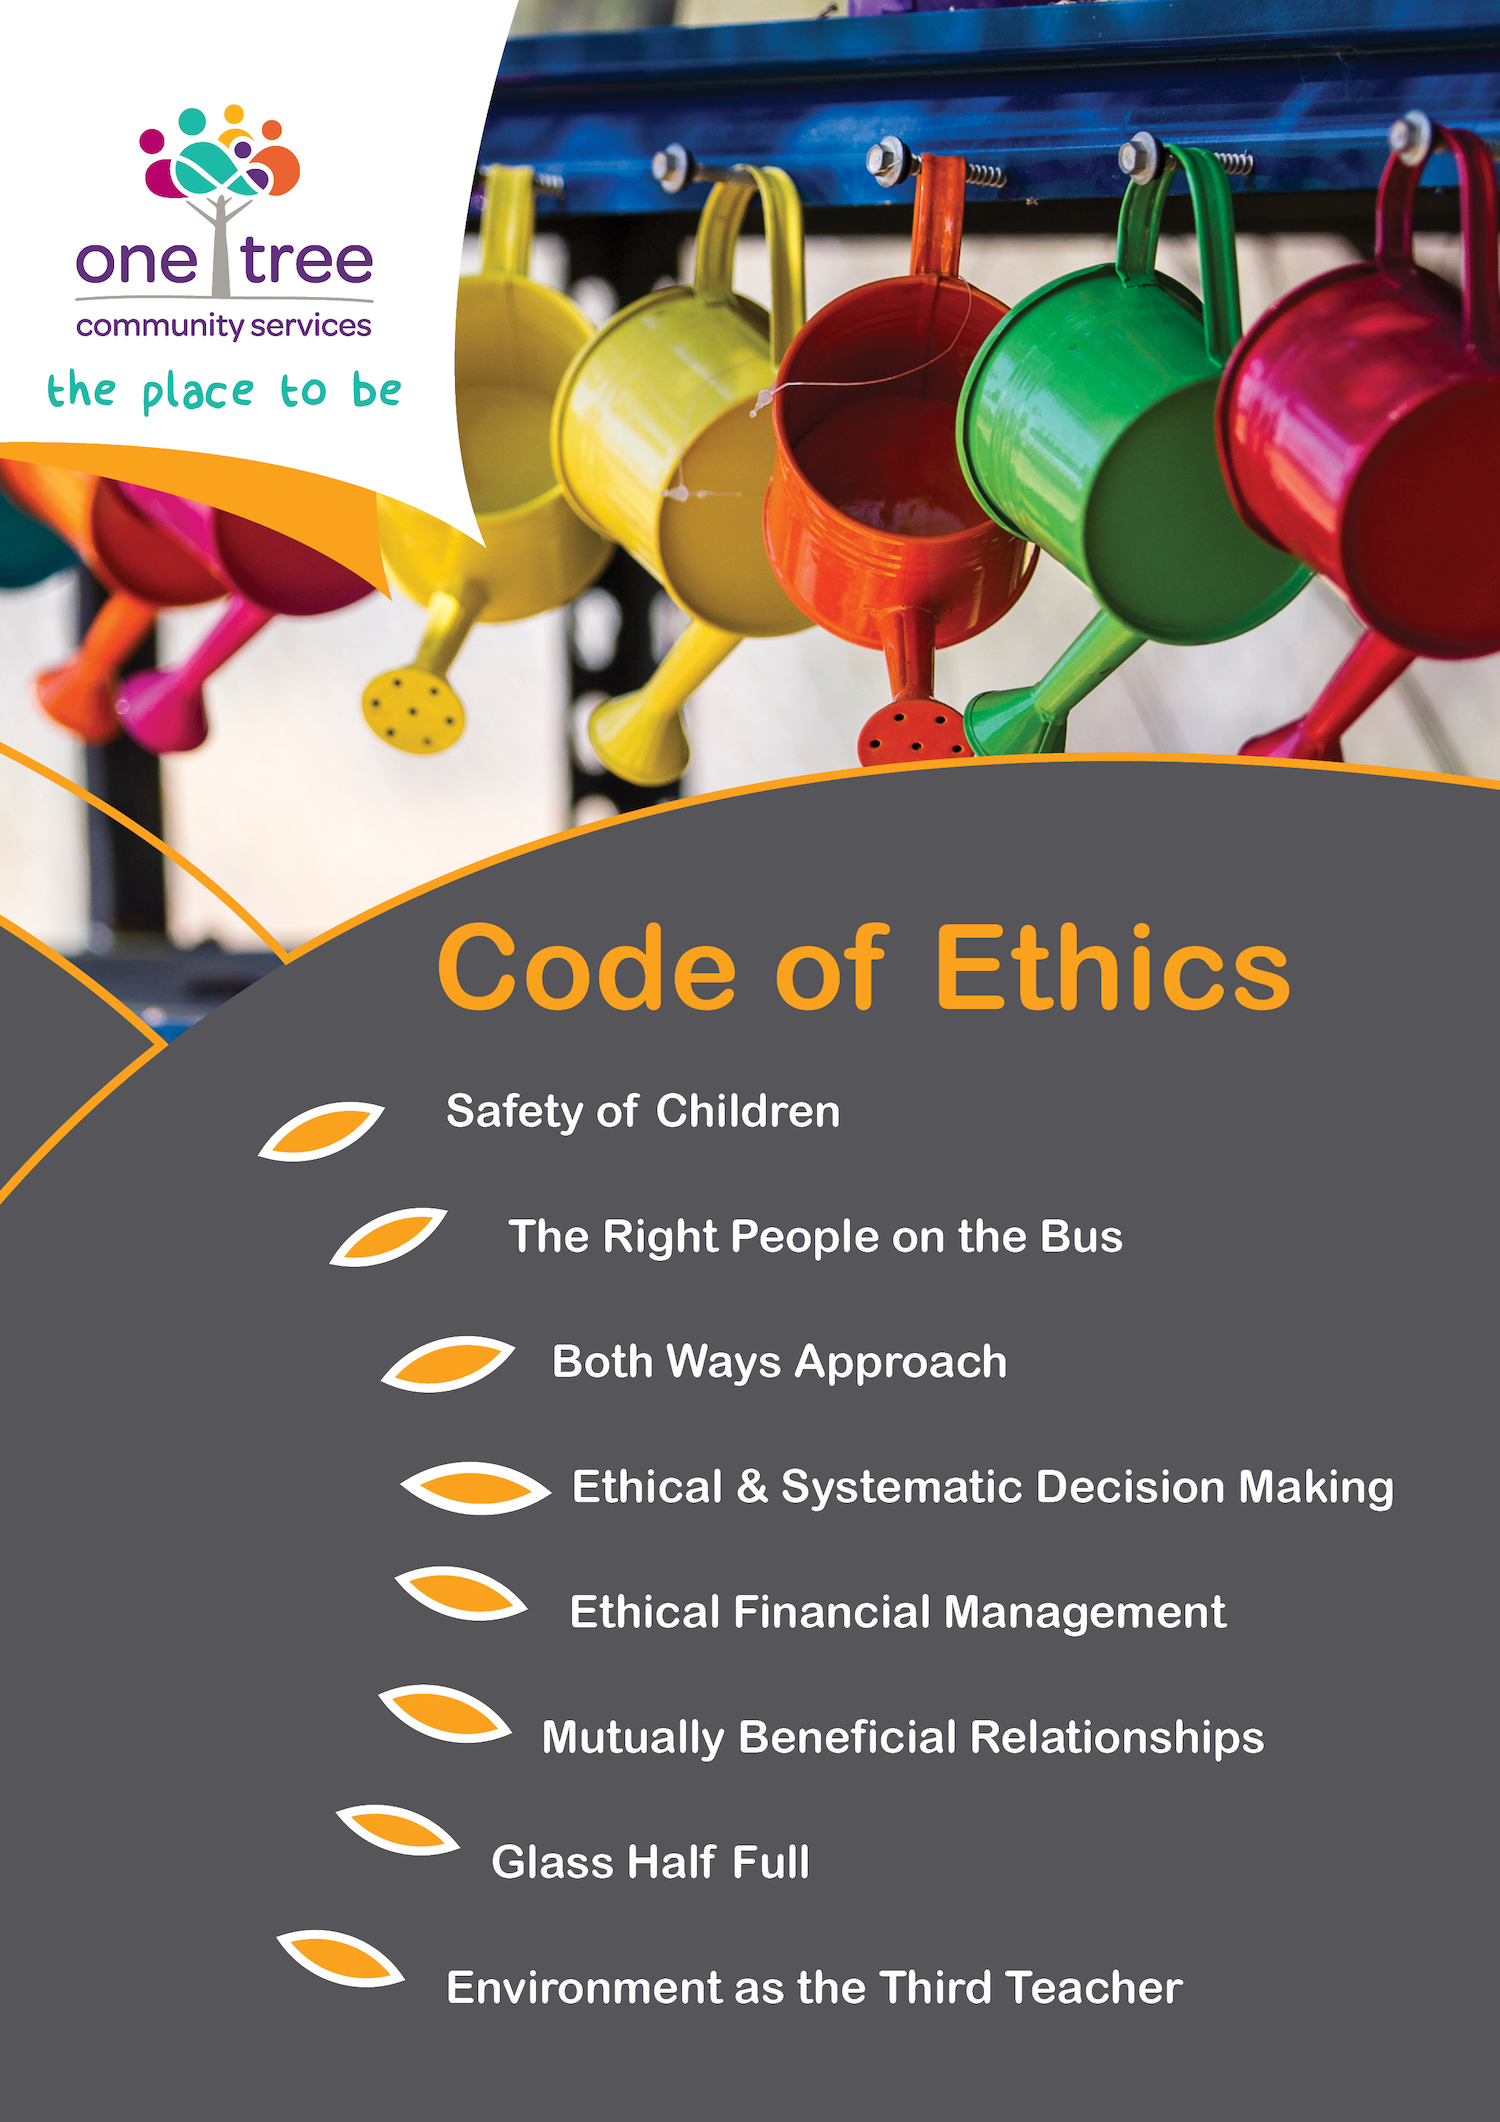 code of ethics childcare poster